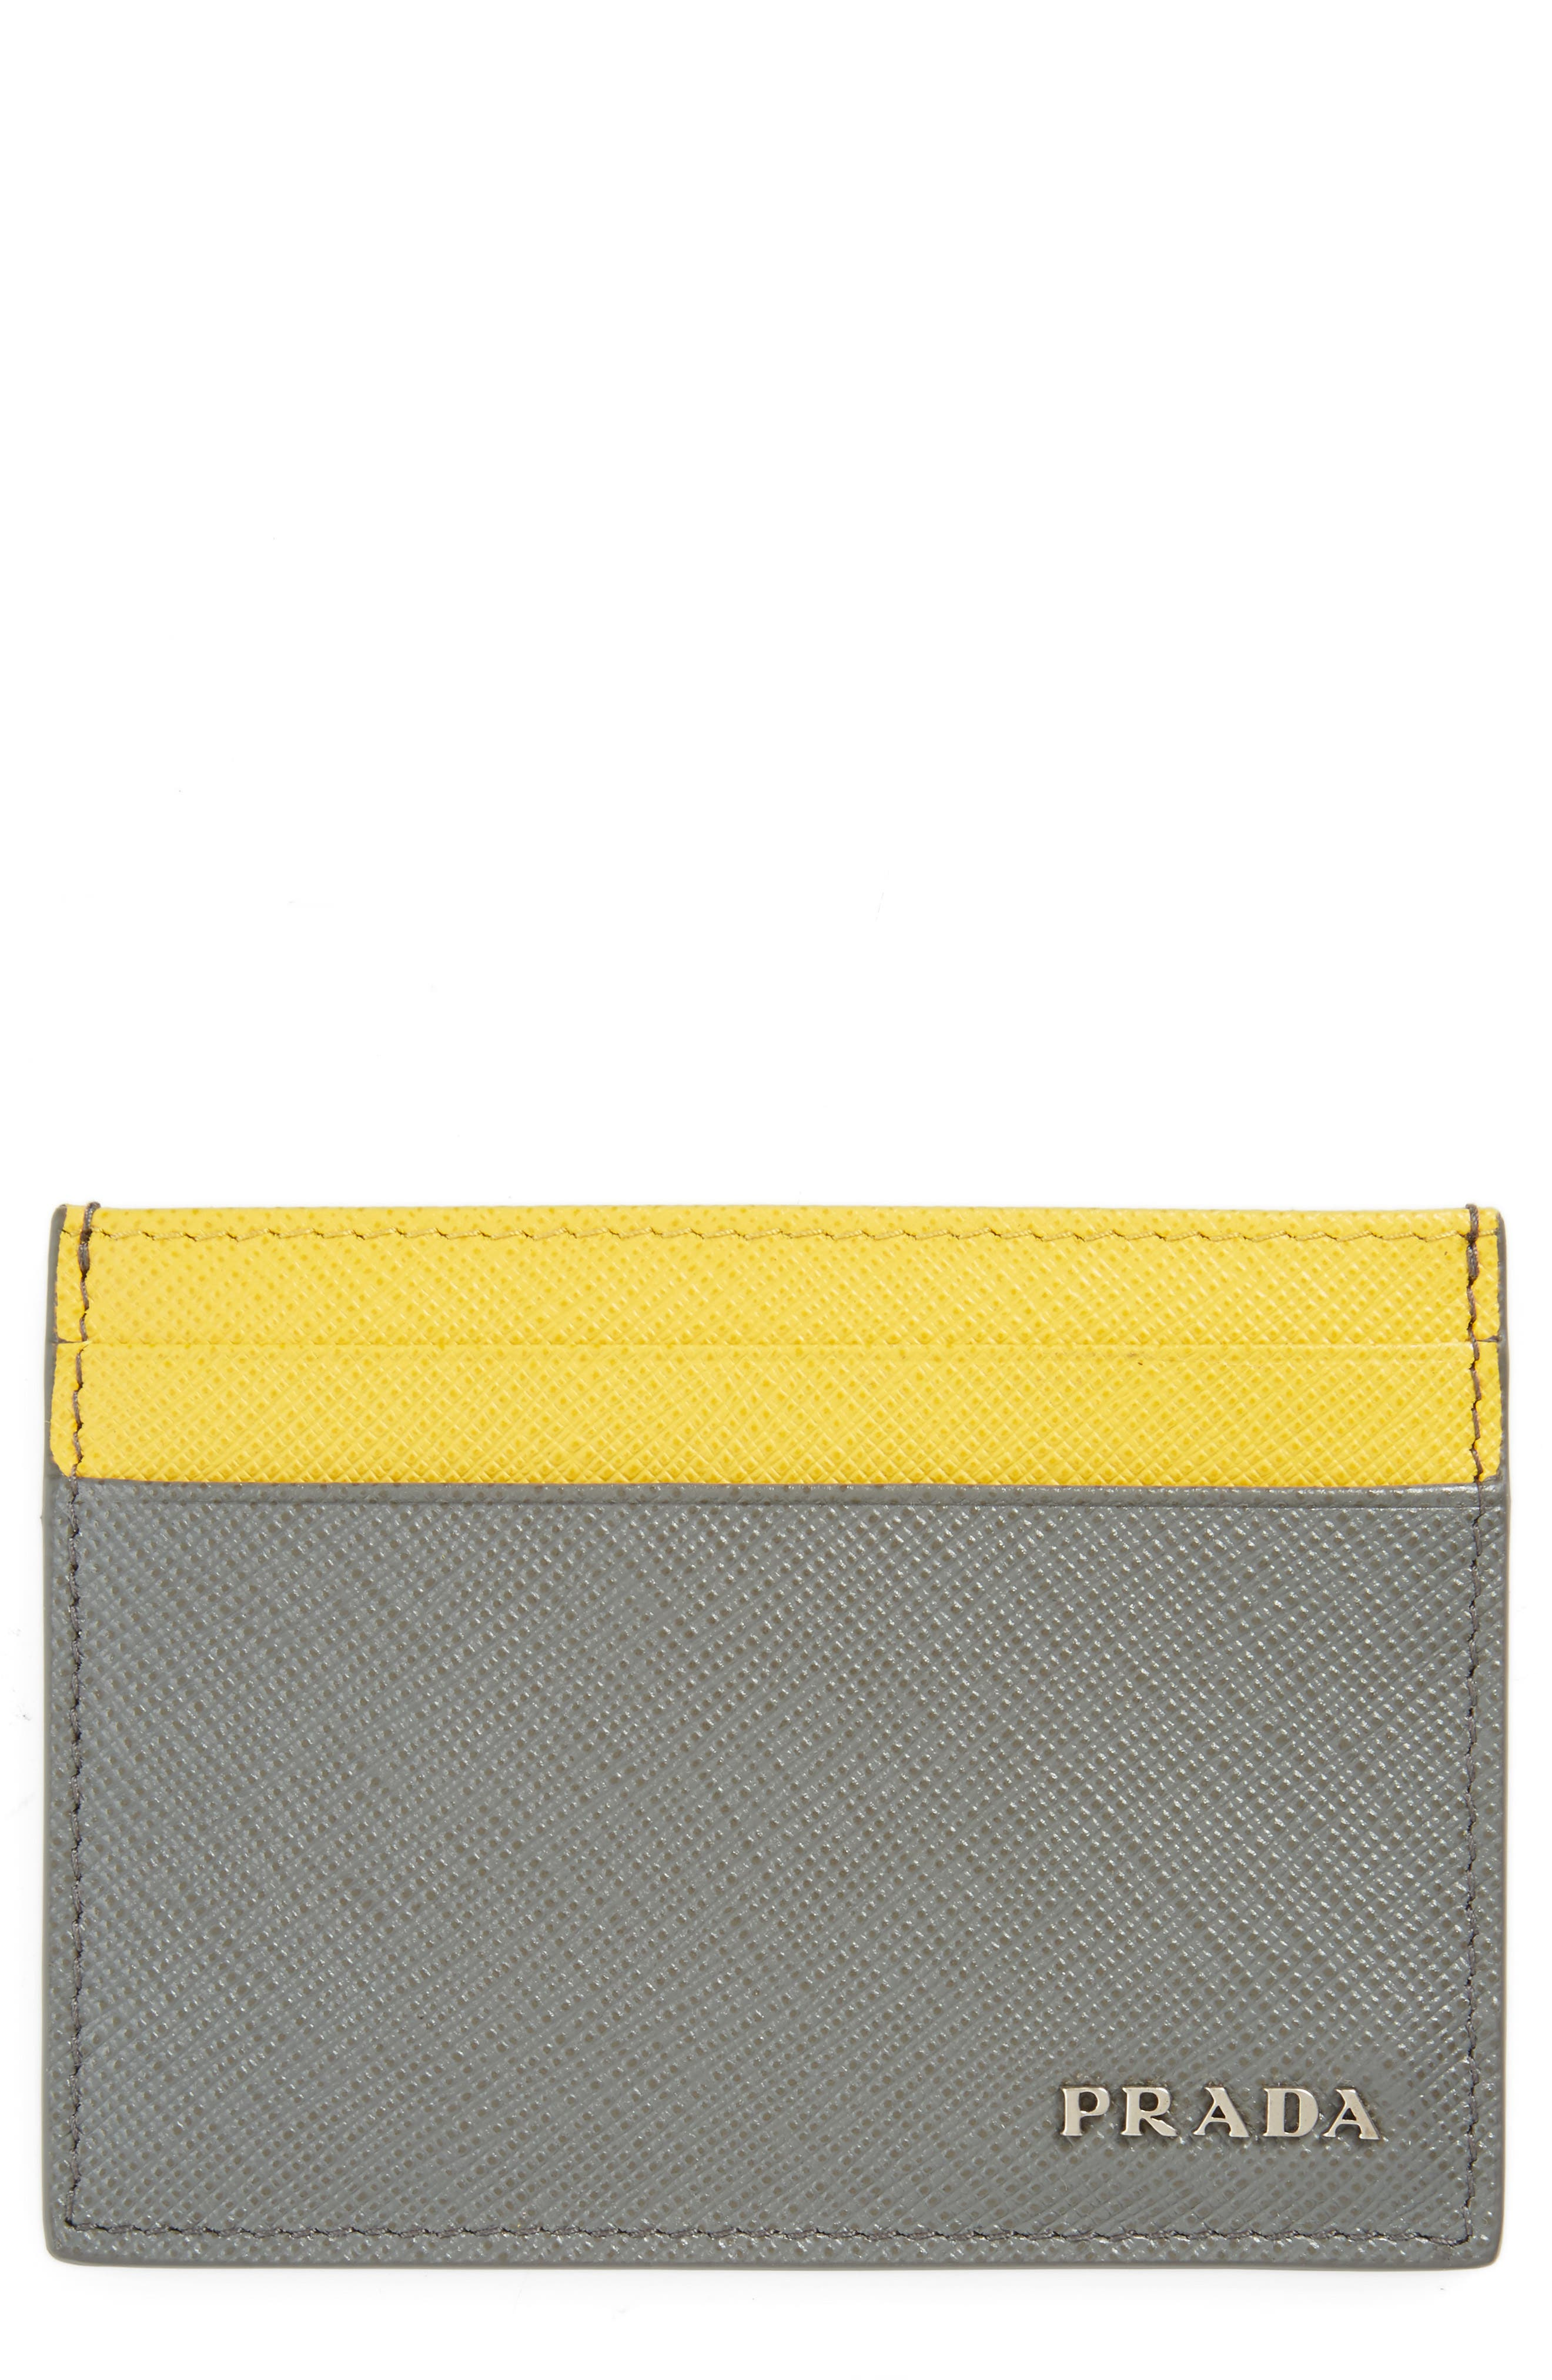 Prada Bicolor Saffiano Leather Card Case